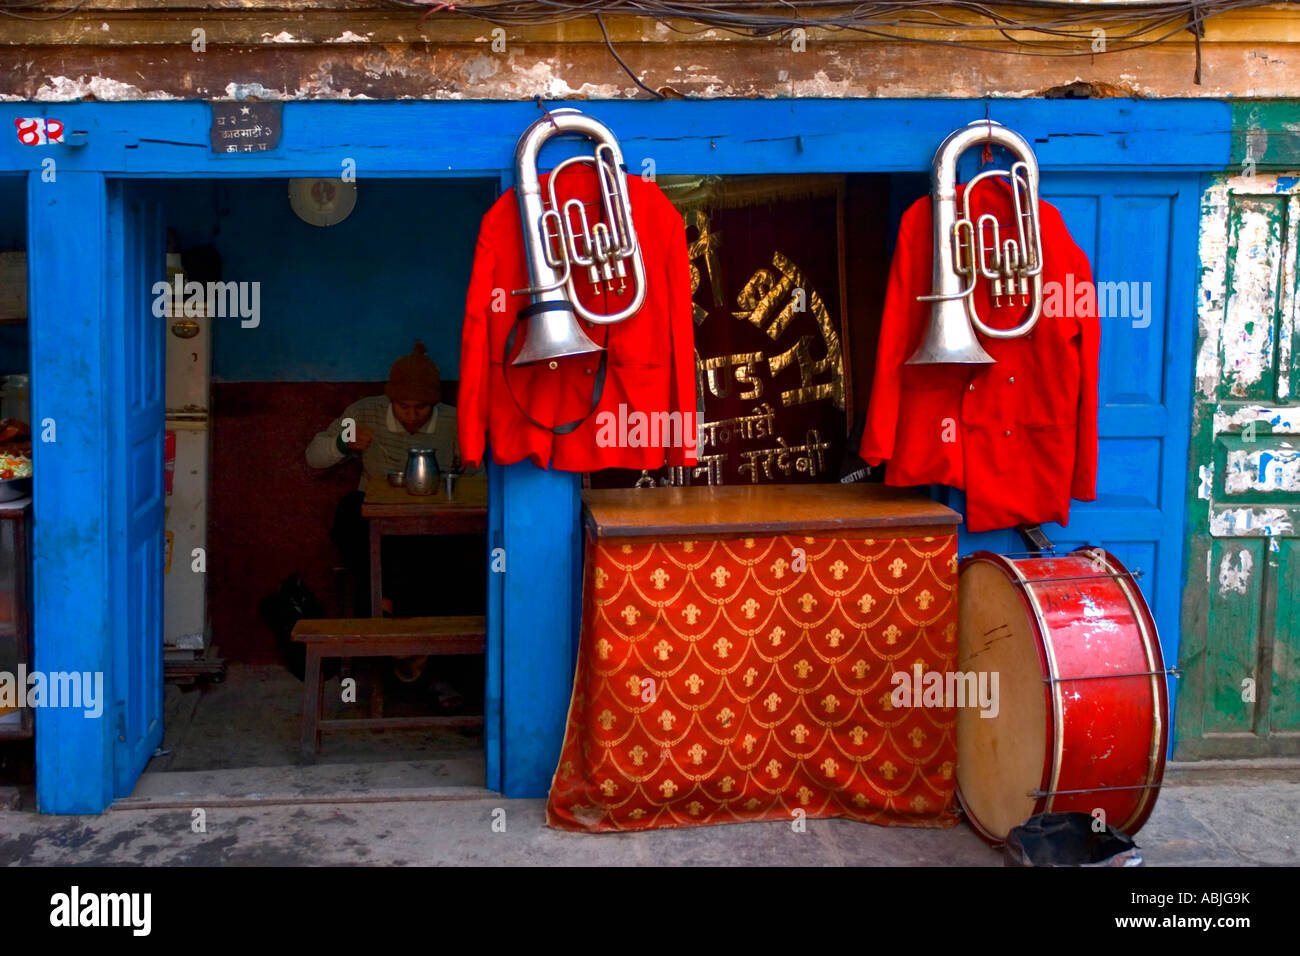 A wedding band musician takes a break in a traditional tea & curry shop in Durbar Square, Kathmandu's old town. - Stock Image